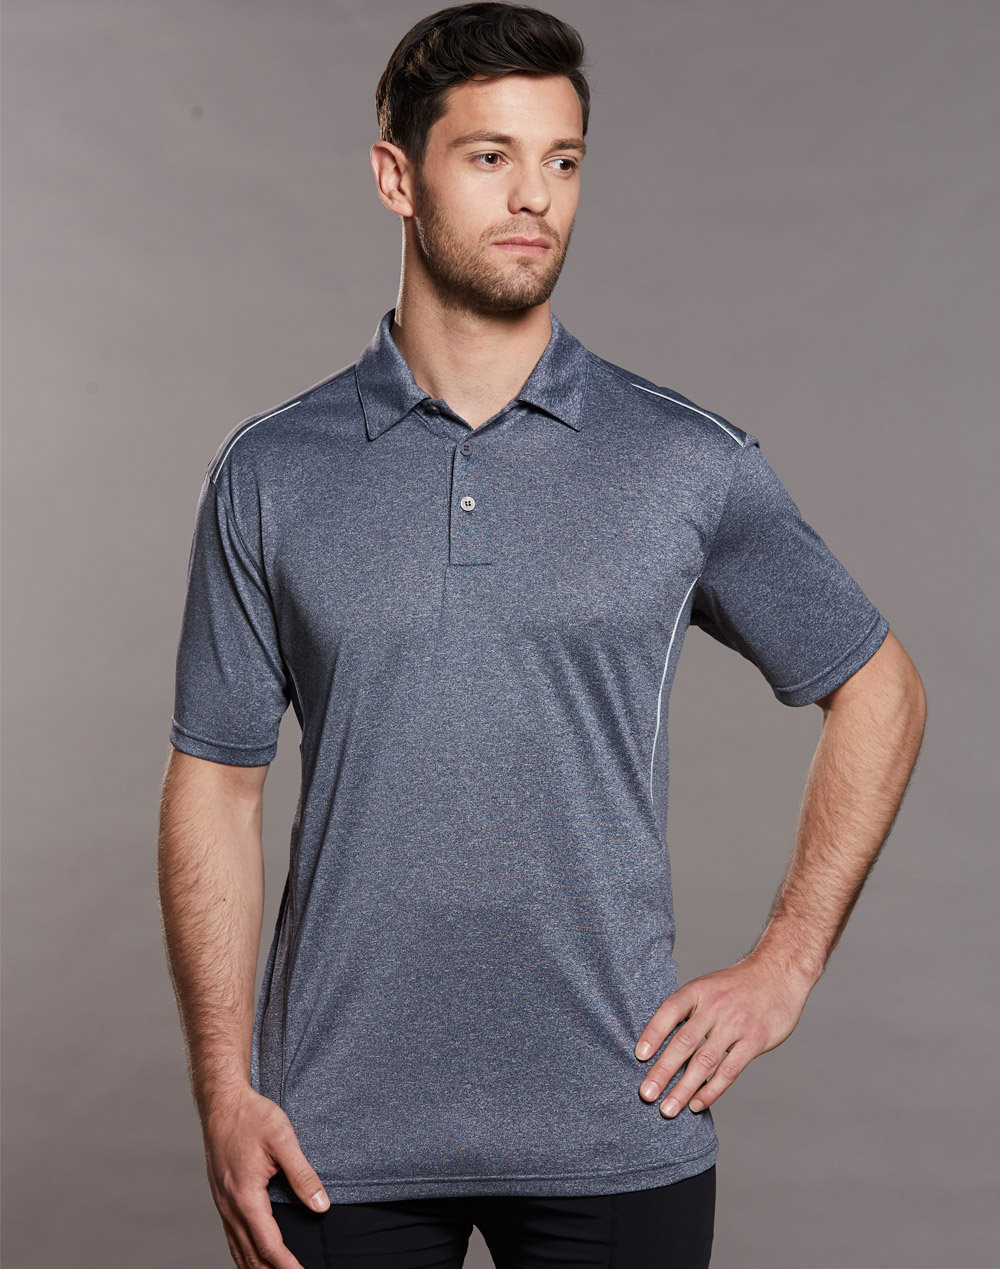 https://s3-ap-southeast-1.amazonaws.com/ws-imgs/POLOSHIRTS/PS85_Navy_model.jpg